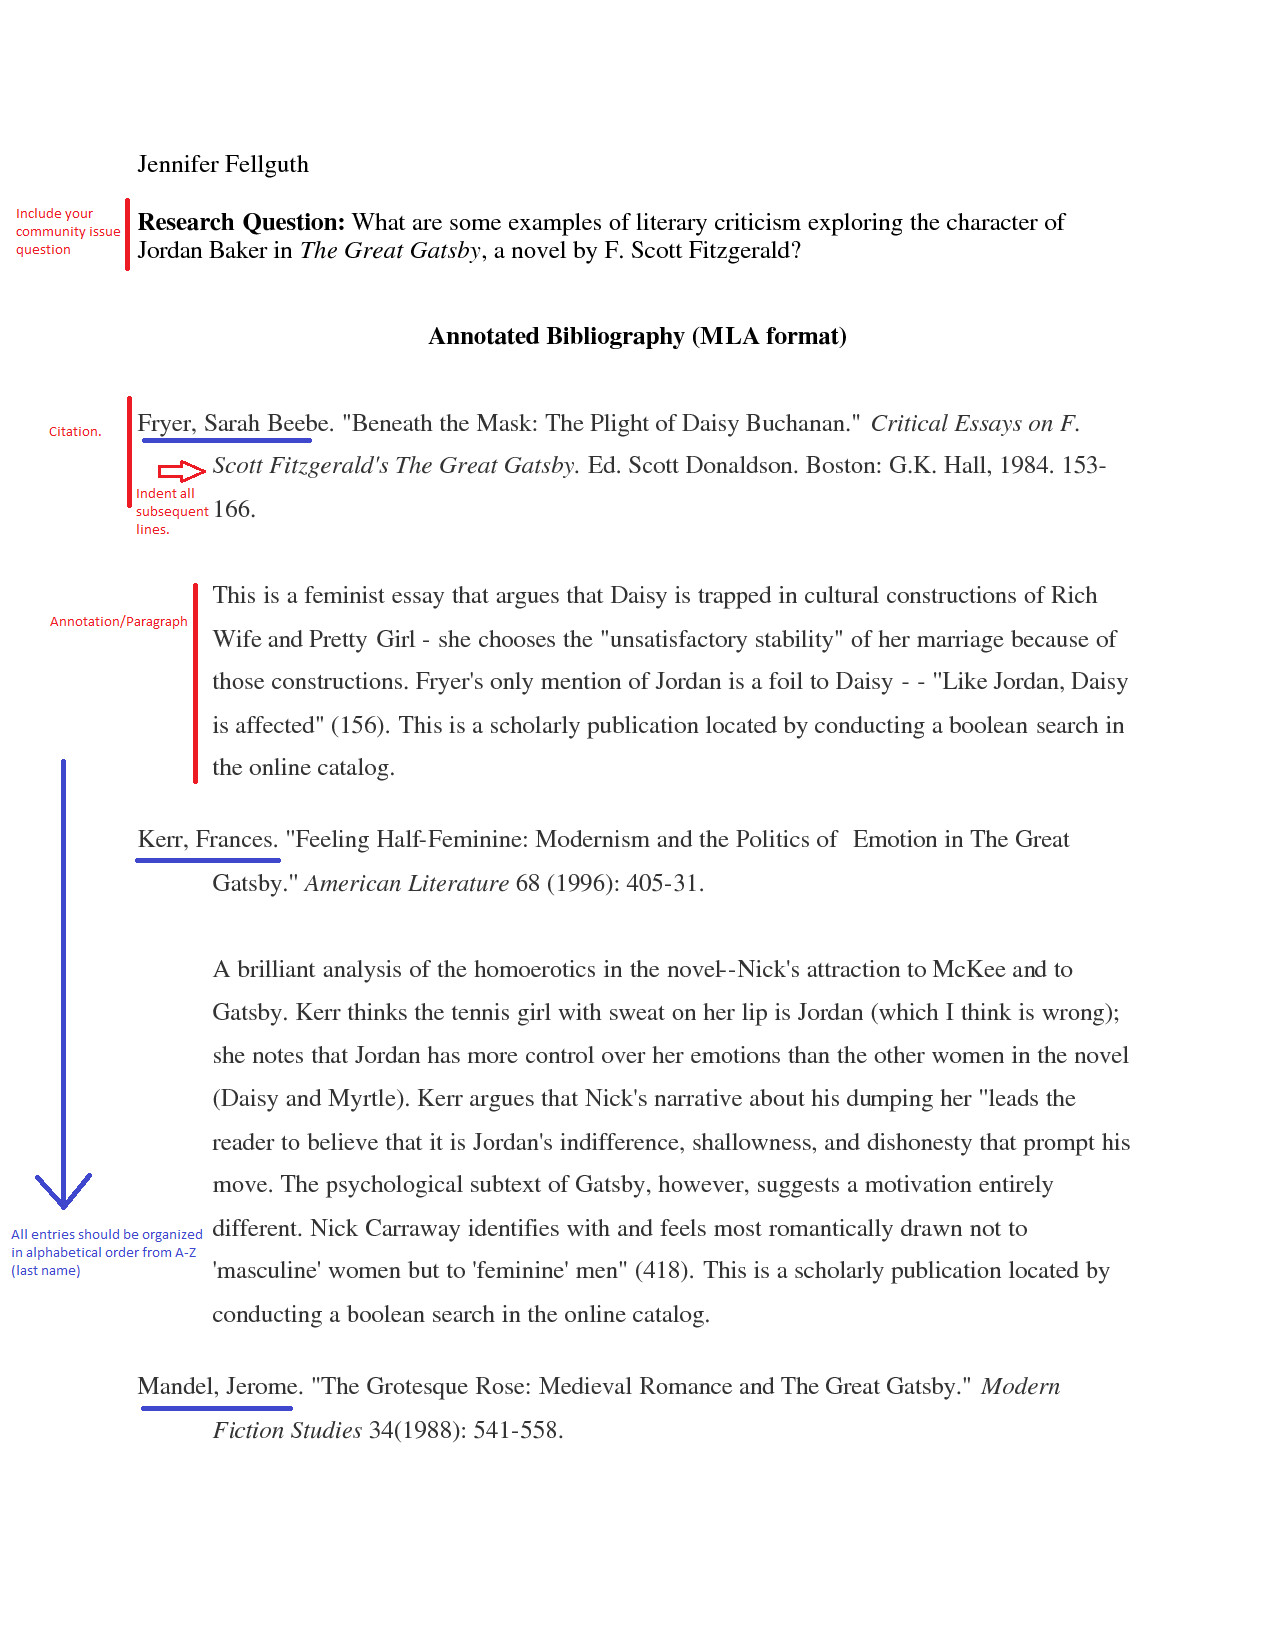 020 Mla Citation For Essay How To Cite Images In Format Did You Know Example Papernotatedbibsampleanno Parenthetical Citing Archaicawful An A Book 8th Edition Full